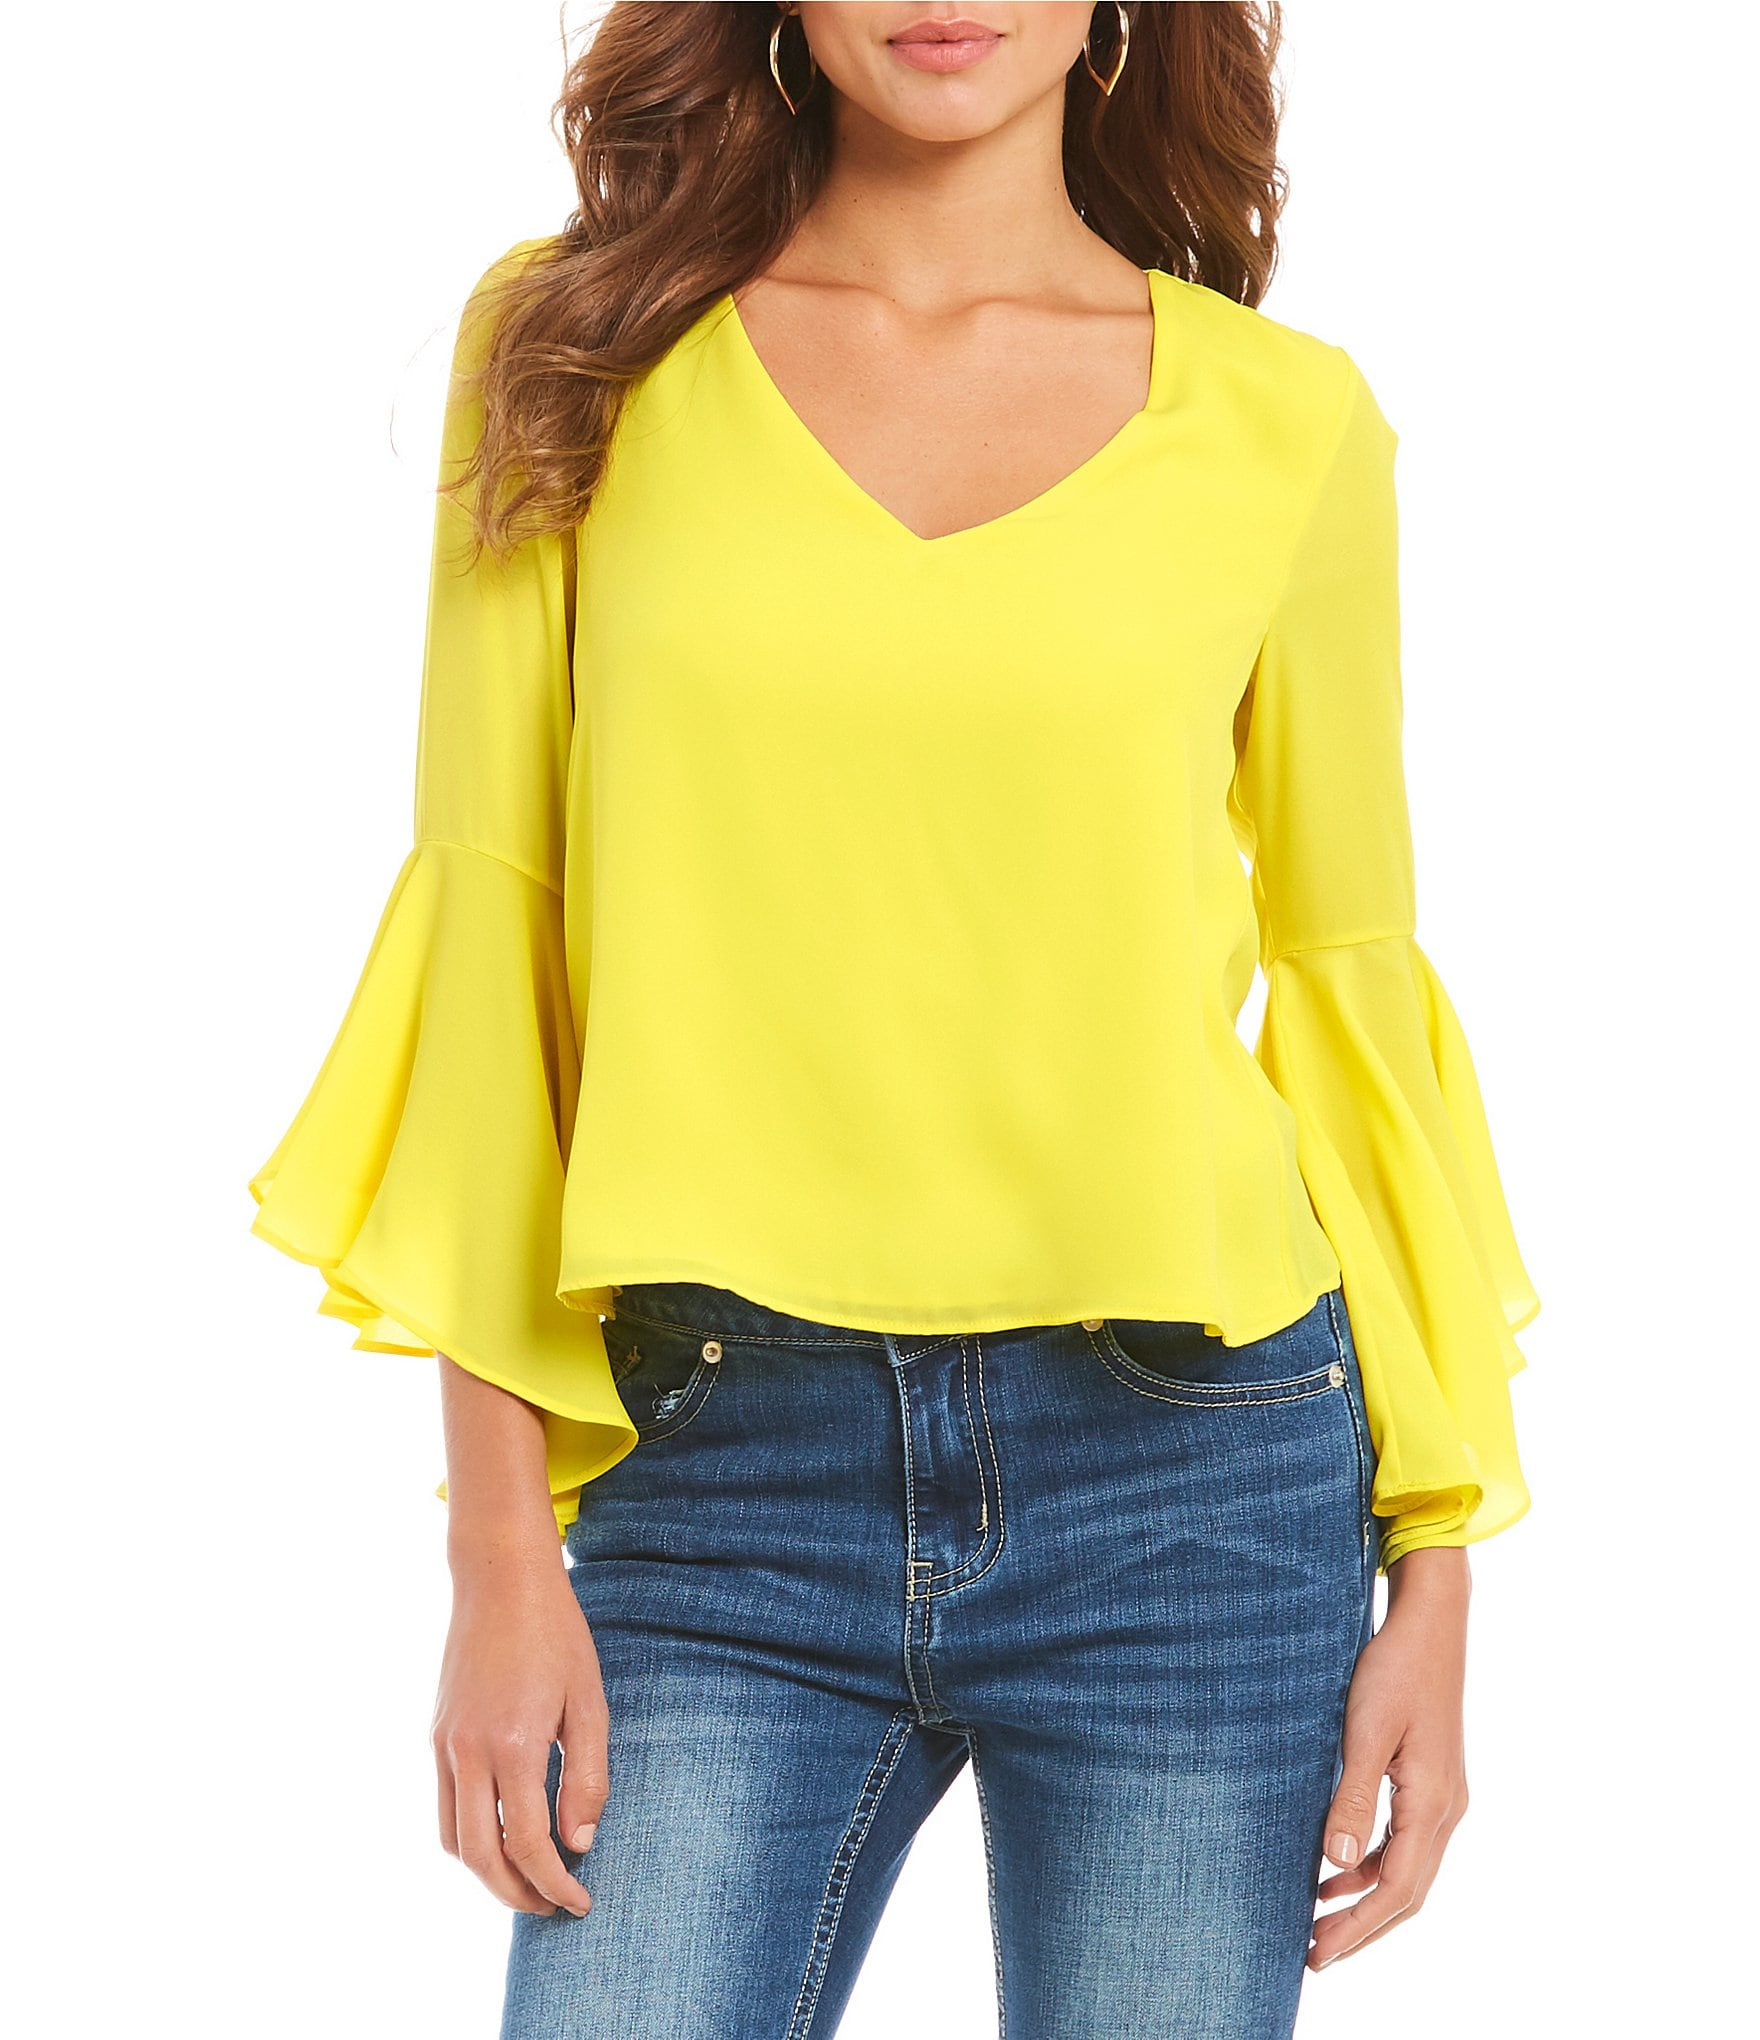 Womens Yellow Tops Blouses Best Blouse 2017